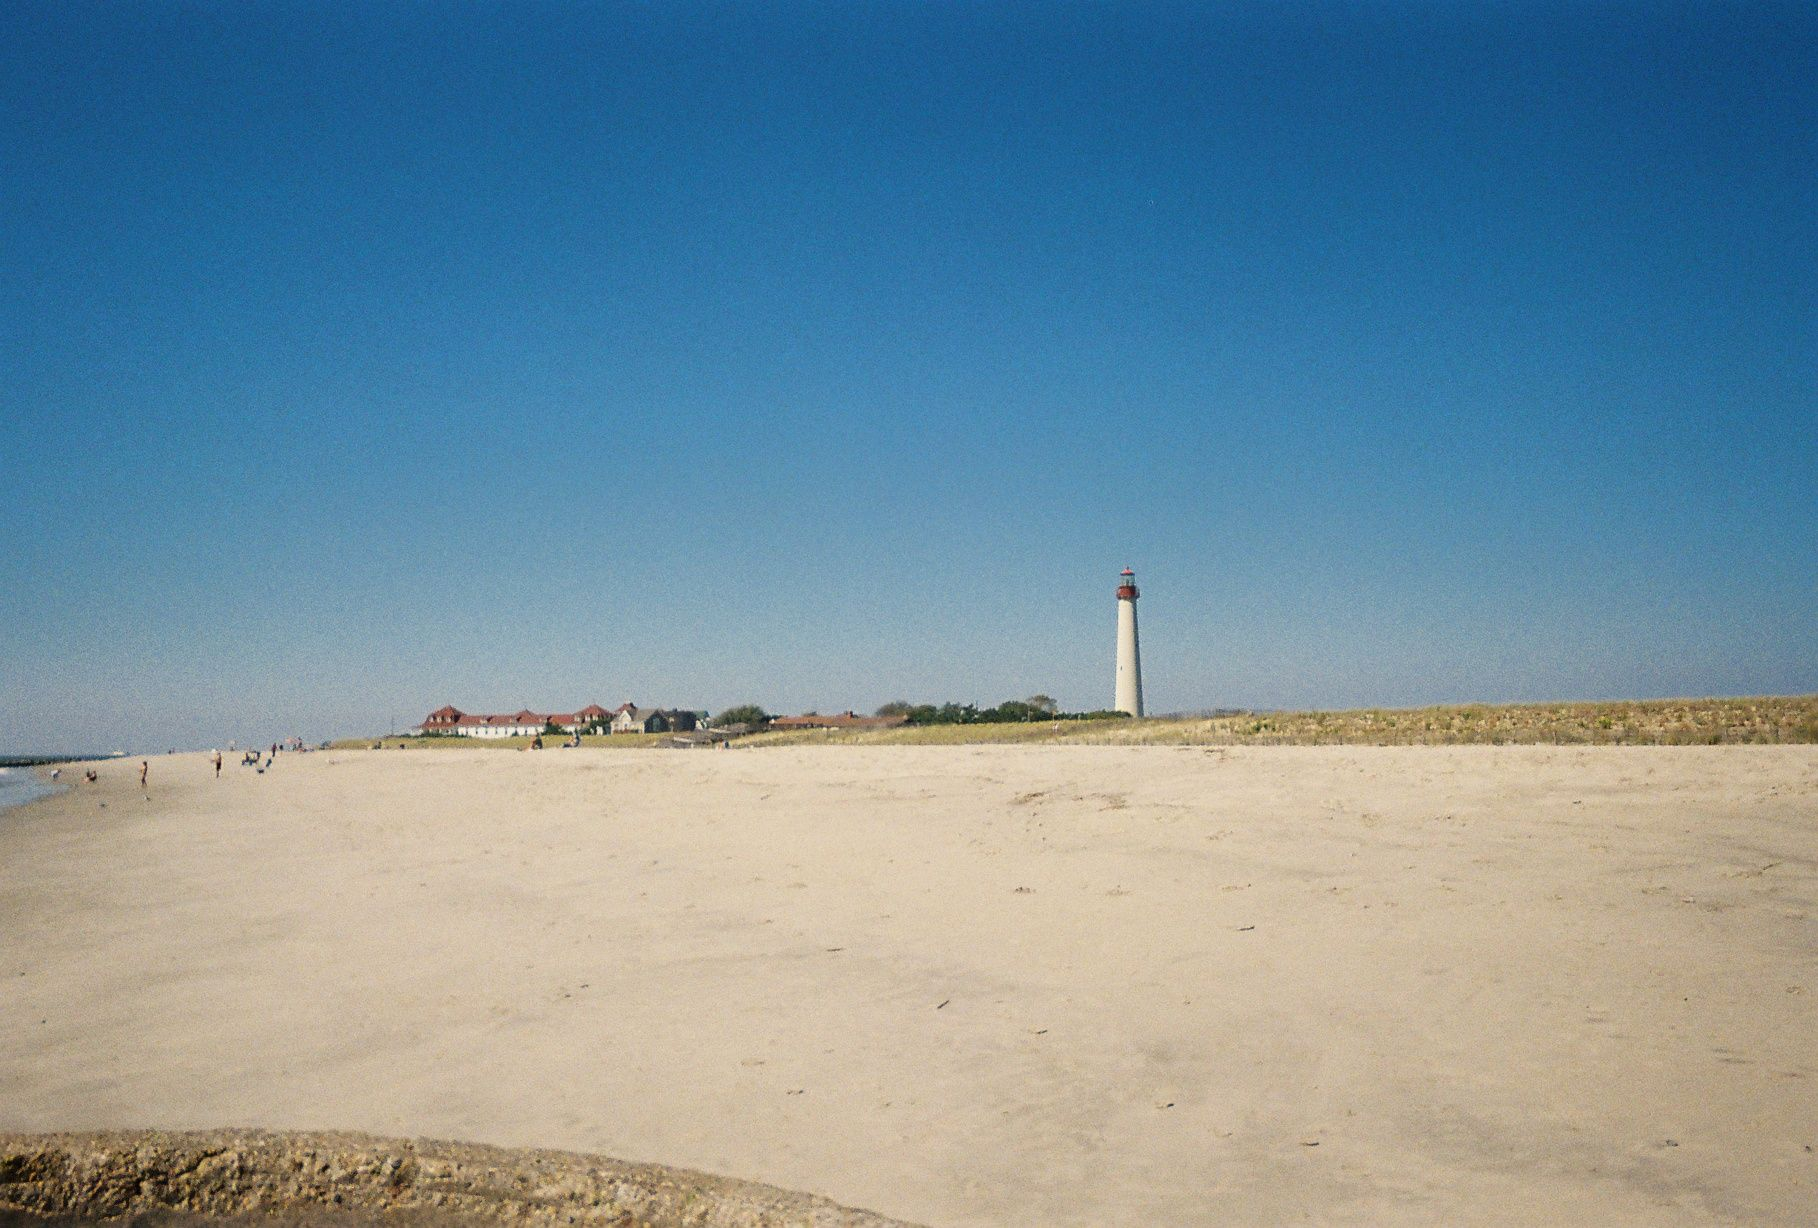 cape may lighthouse from the beach